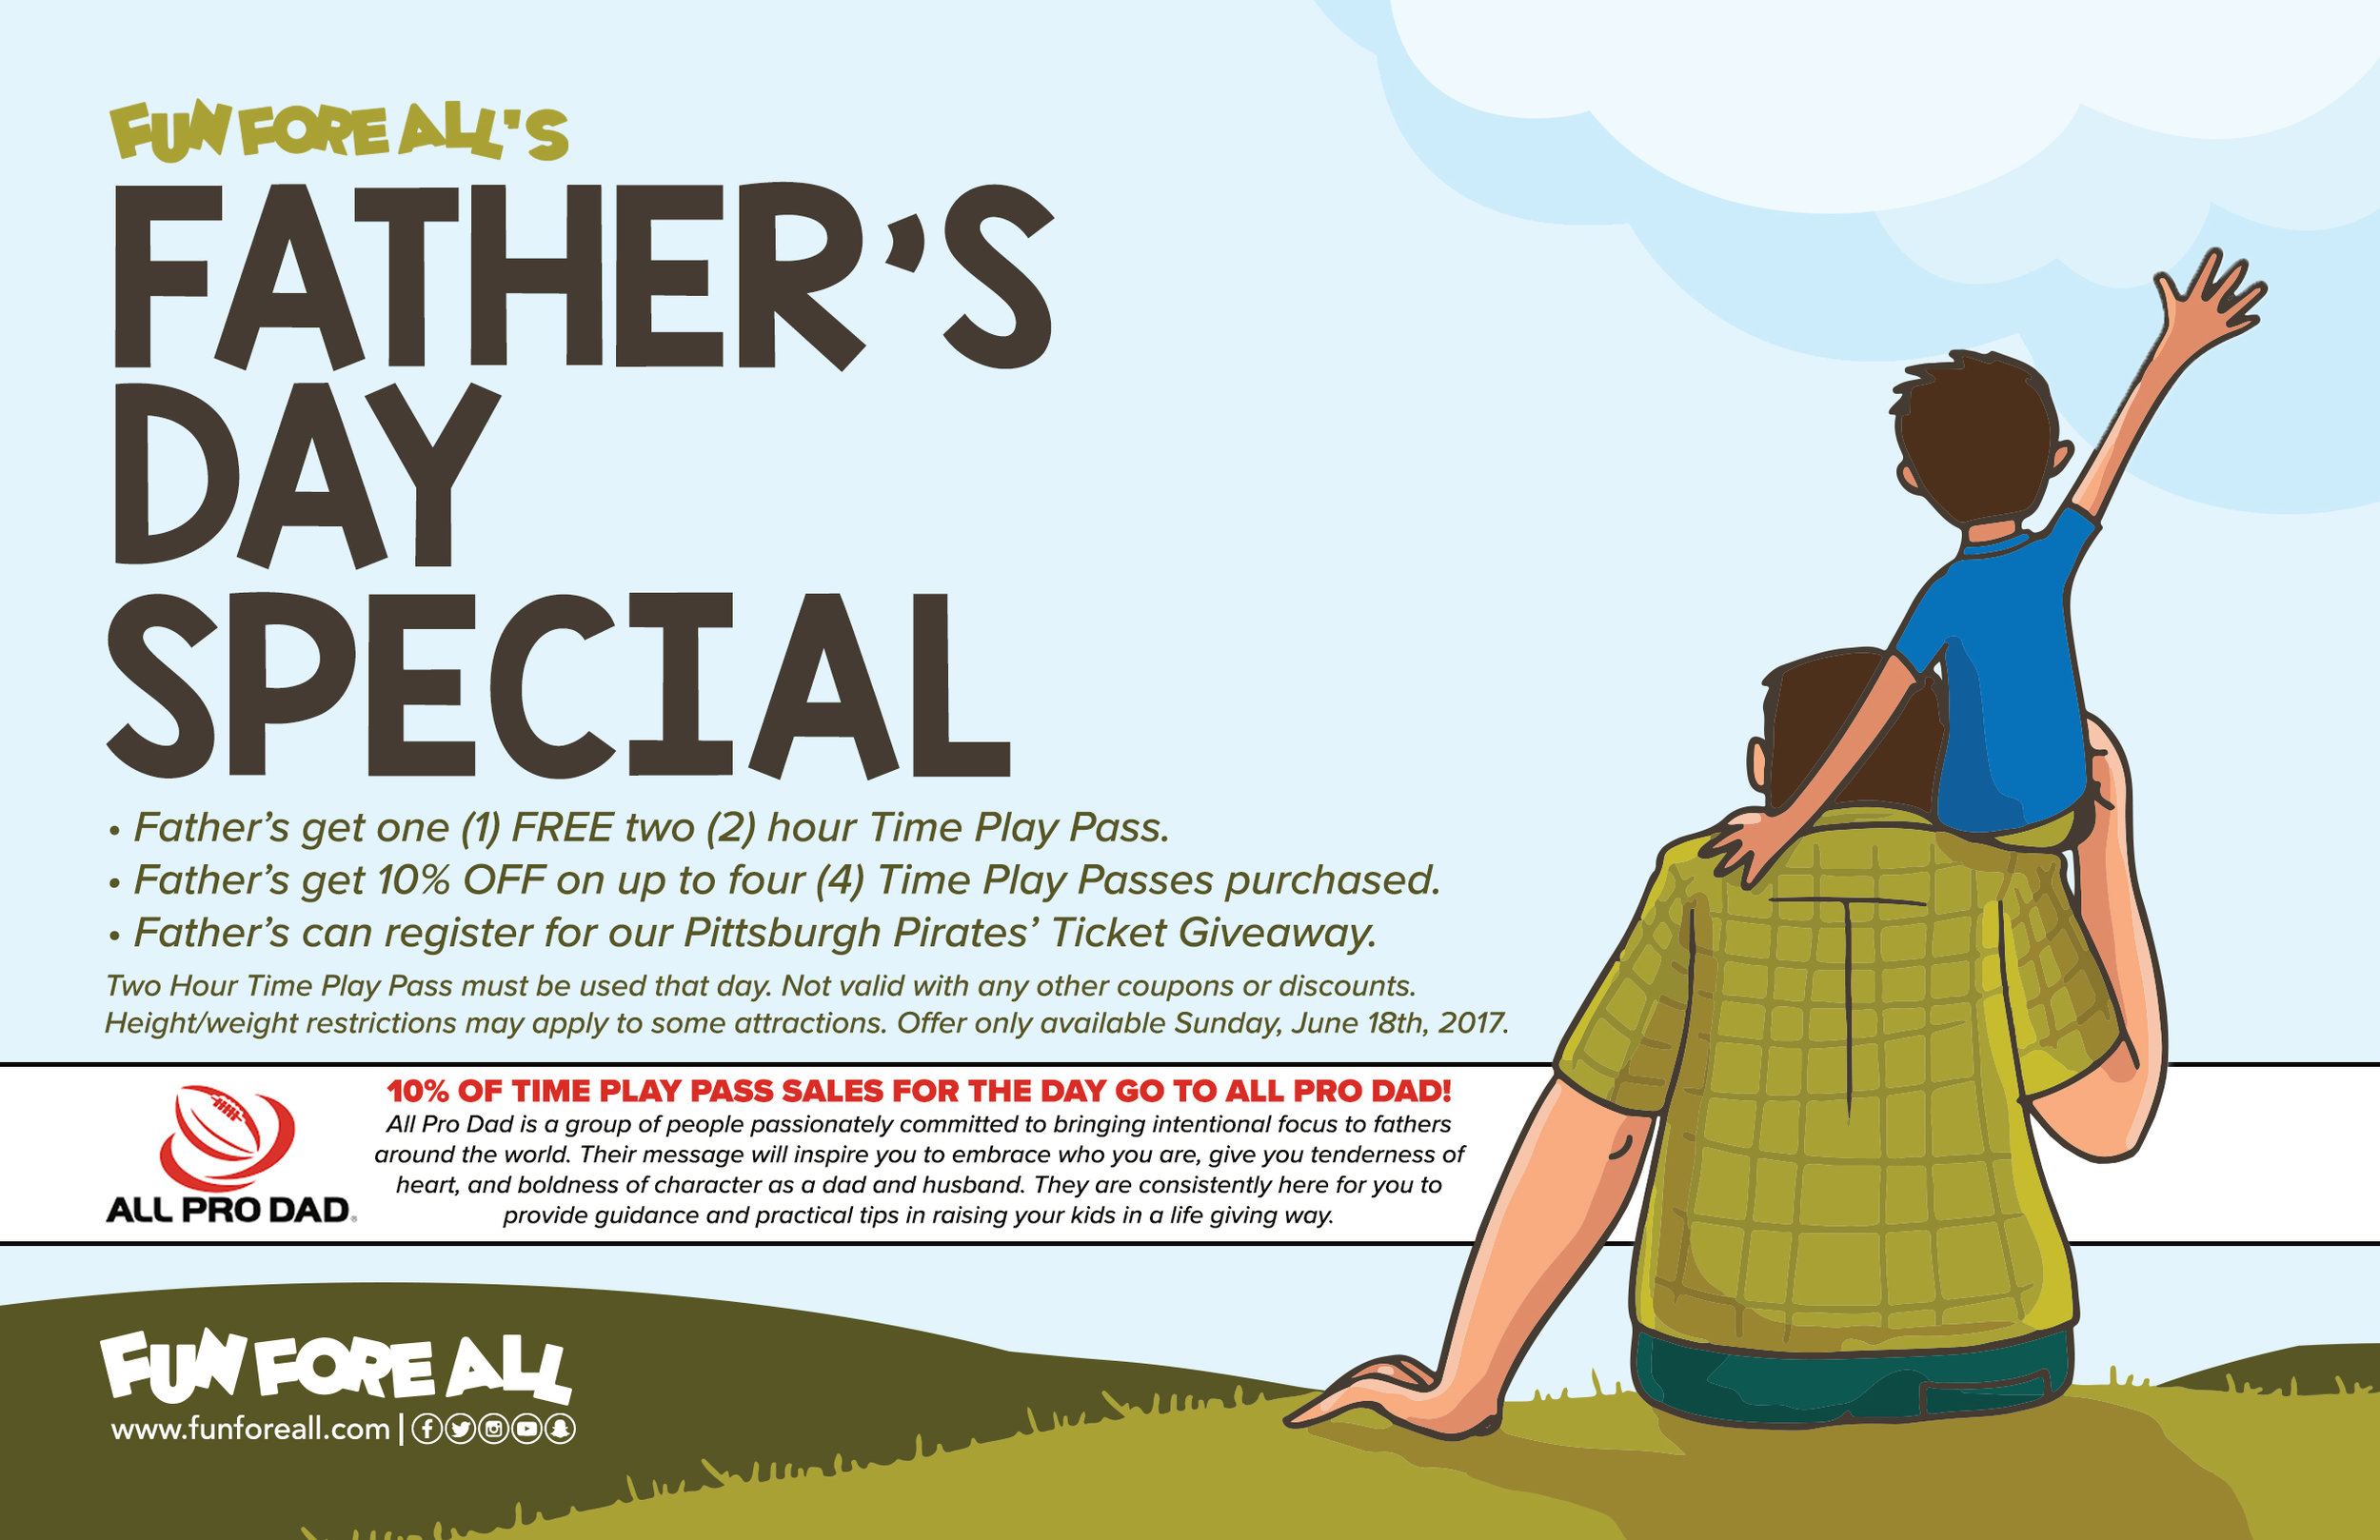 FATHER'S DAY SPECIAL FLYER